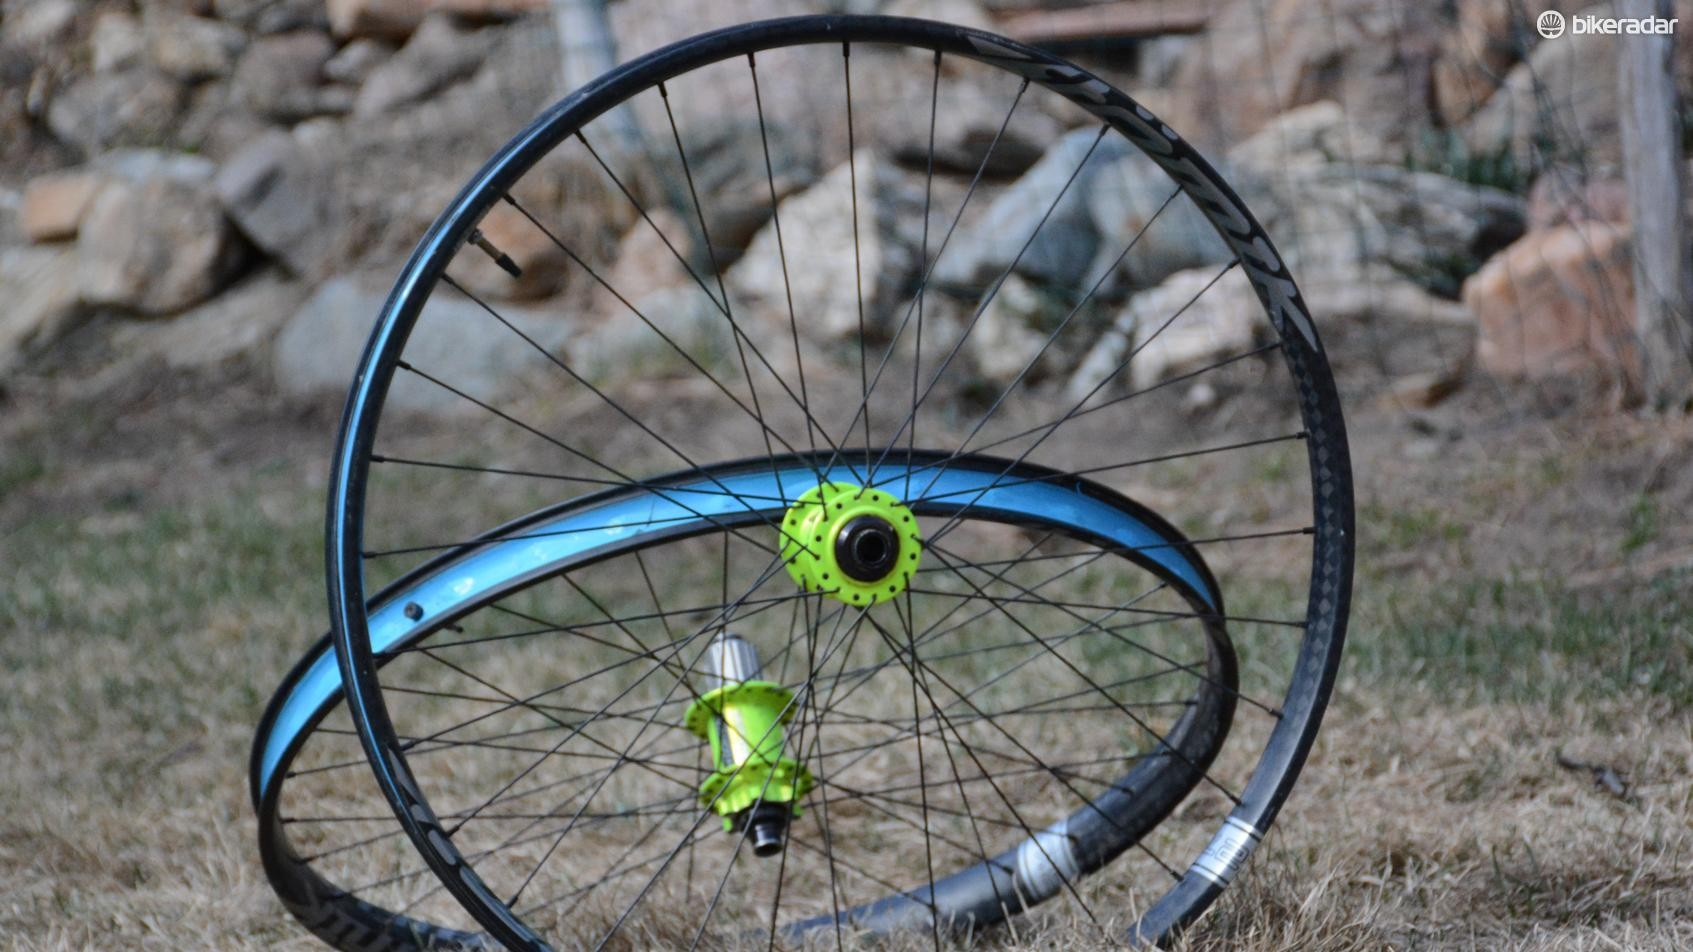 The rims are taped for tubeless compatibility